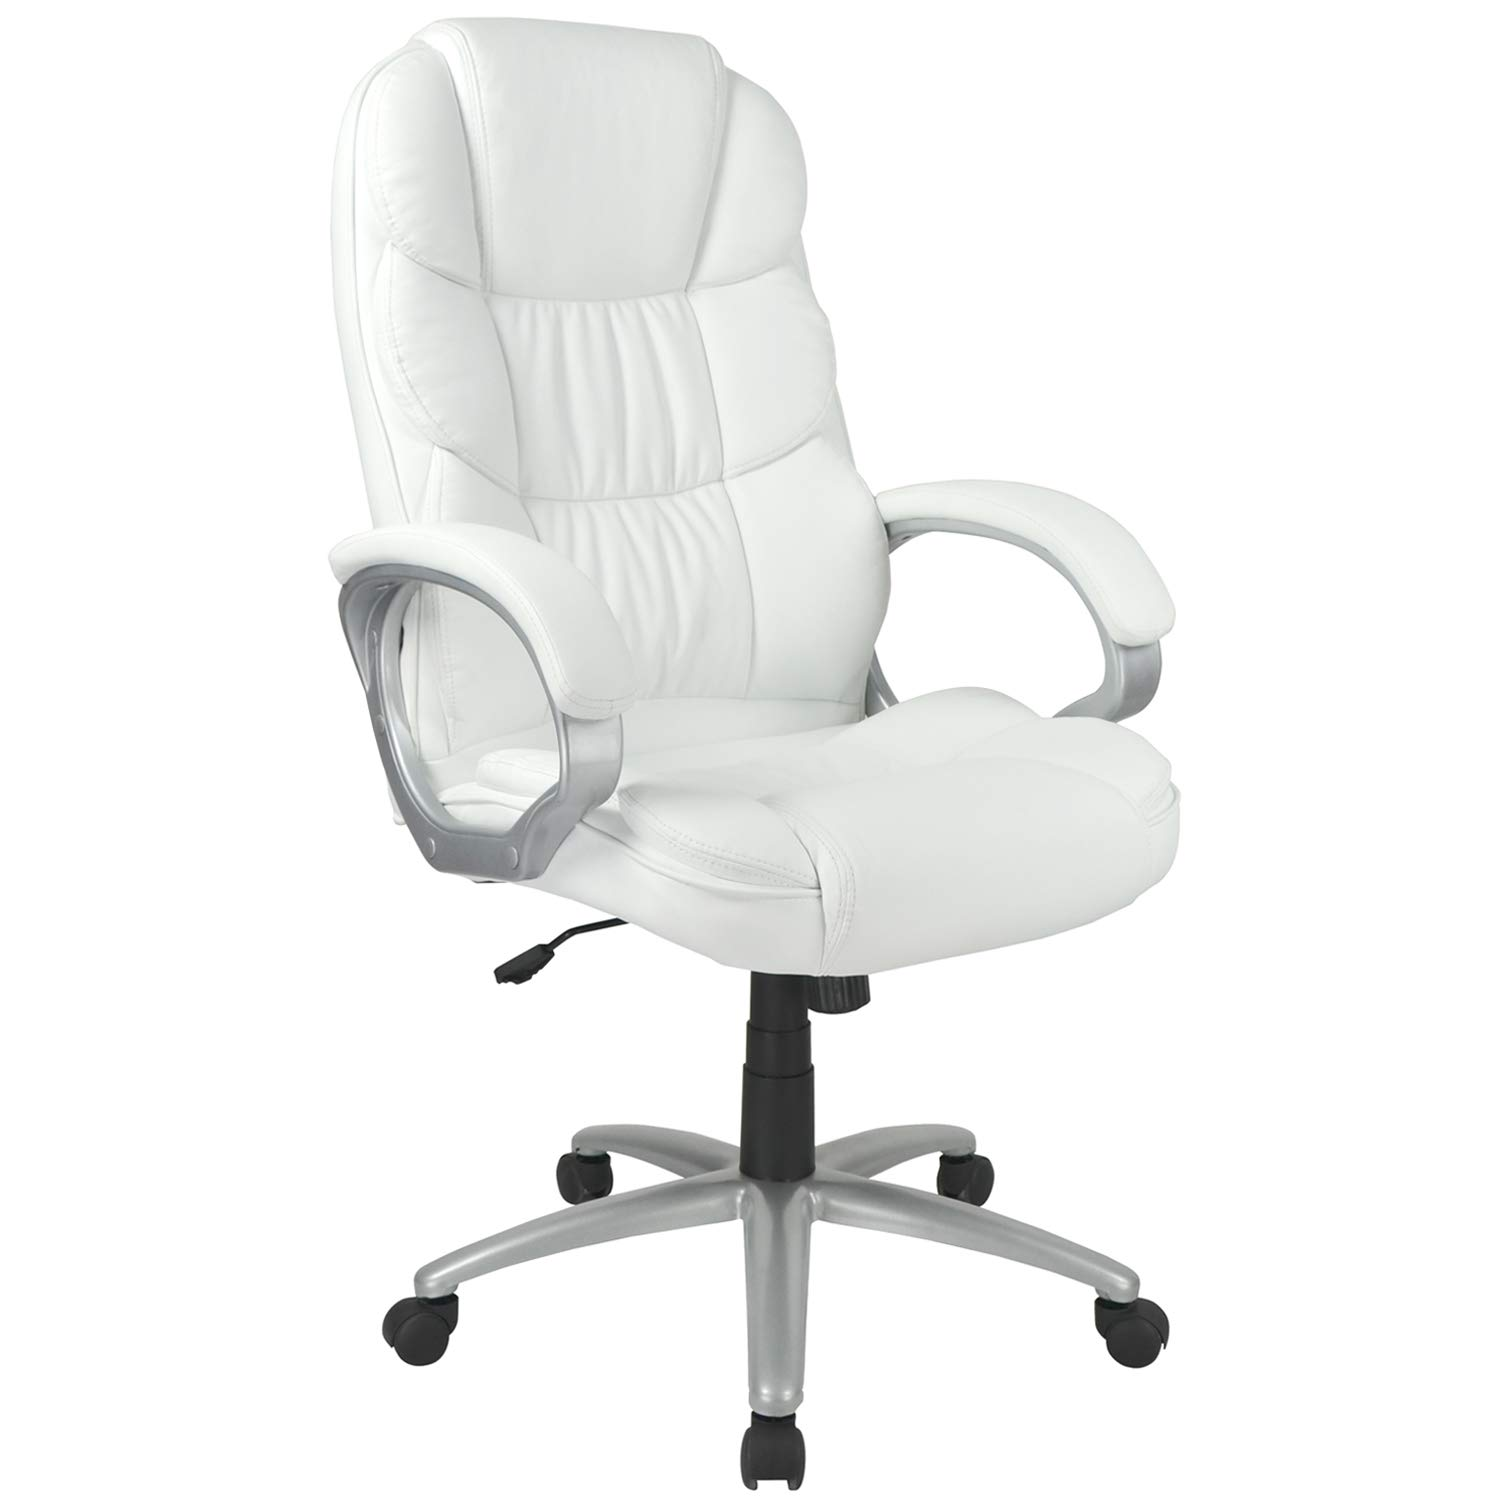 Office Chair Ergonomic Desk Chair PU Leather Computer Chair Task Rolling Swivel Stool High Back Executive Chair with Lumbar Support Armrest for Home Office, White